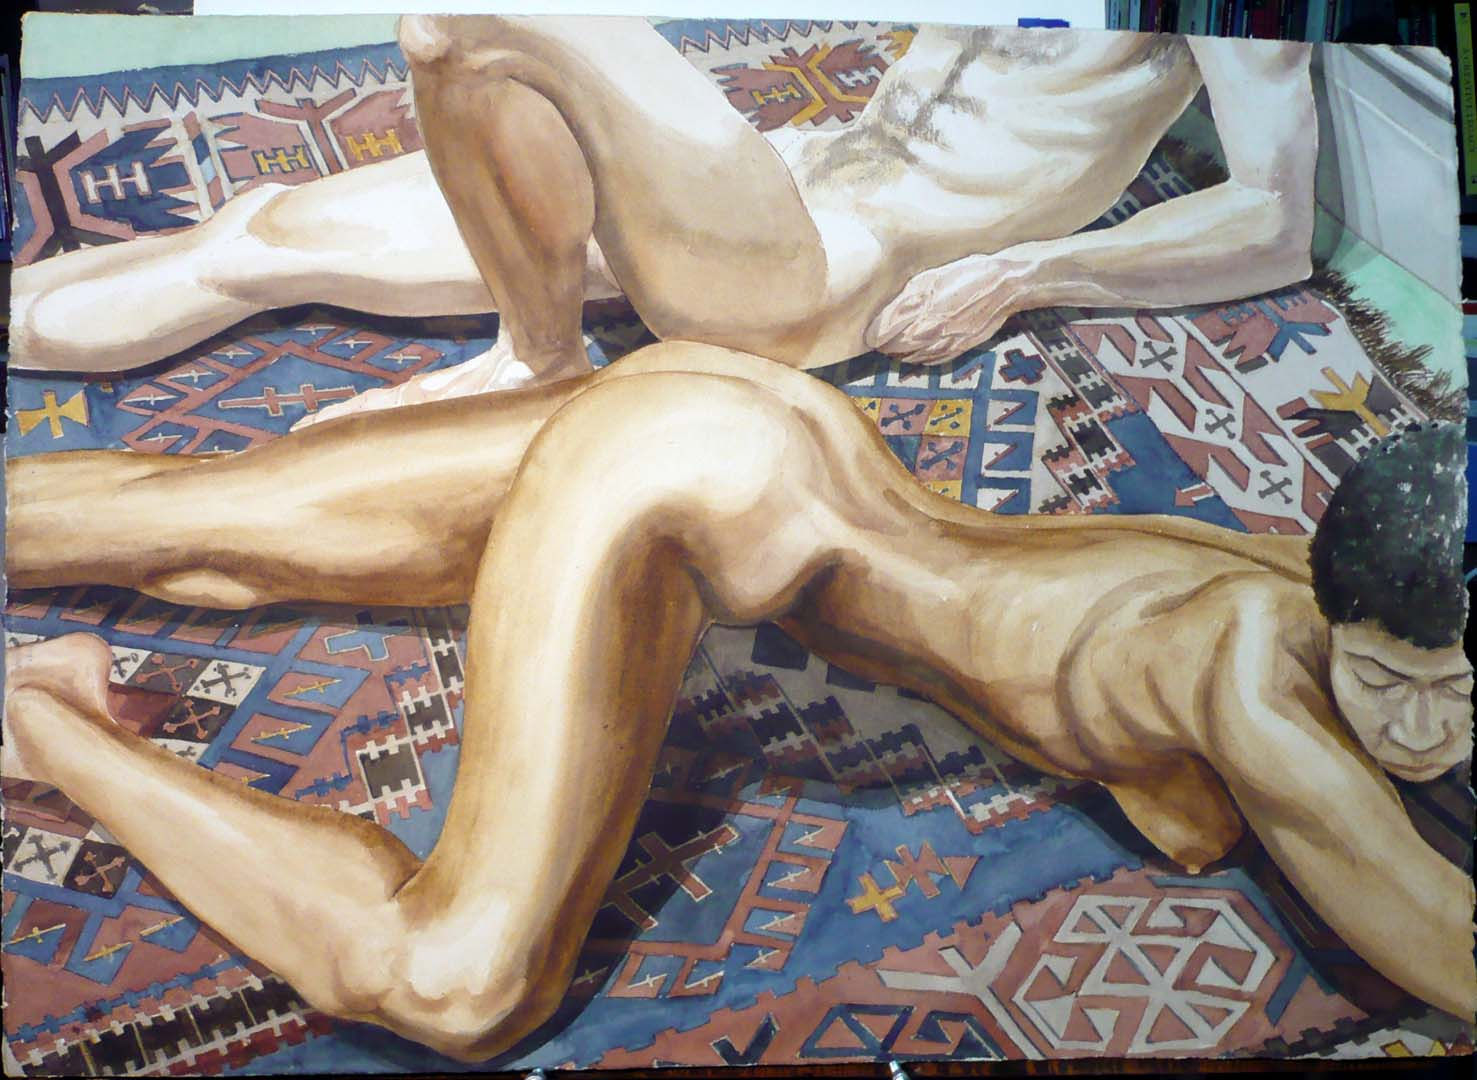 1978 Male and Female Models Reclined on Indian Blanket Watercolor on Paper 29.375 x 41